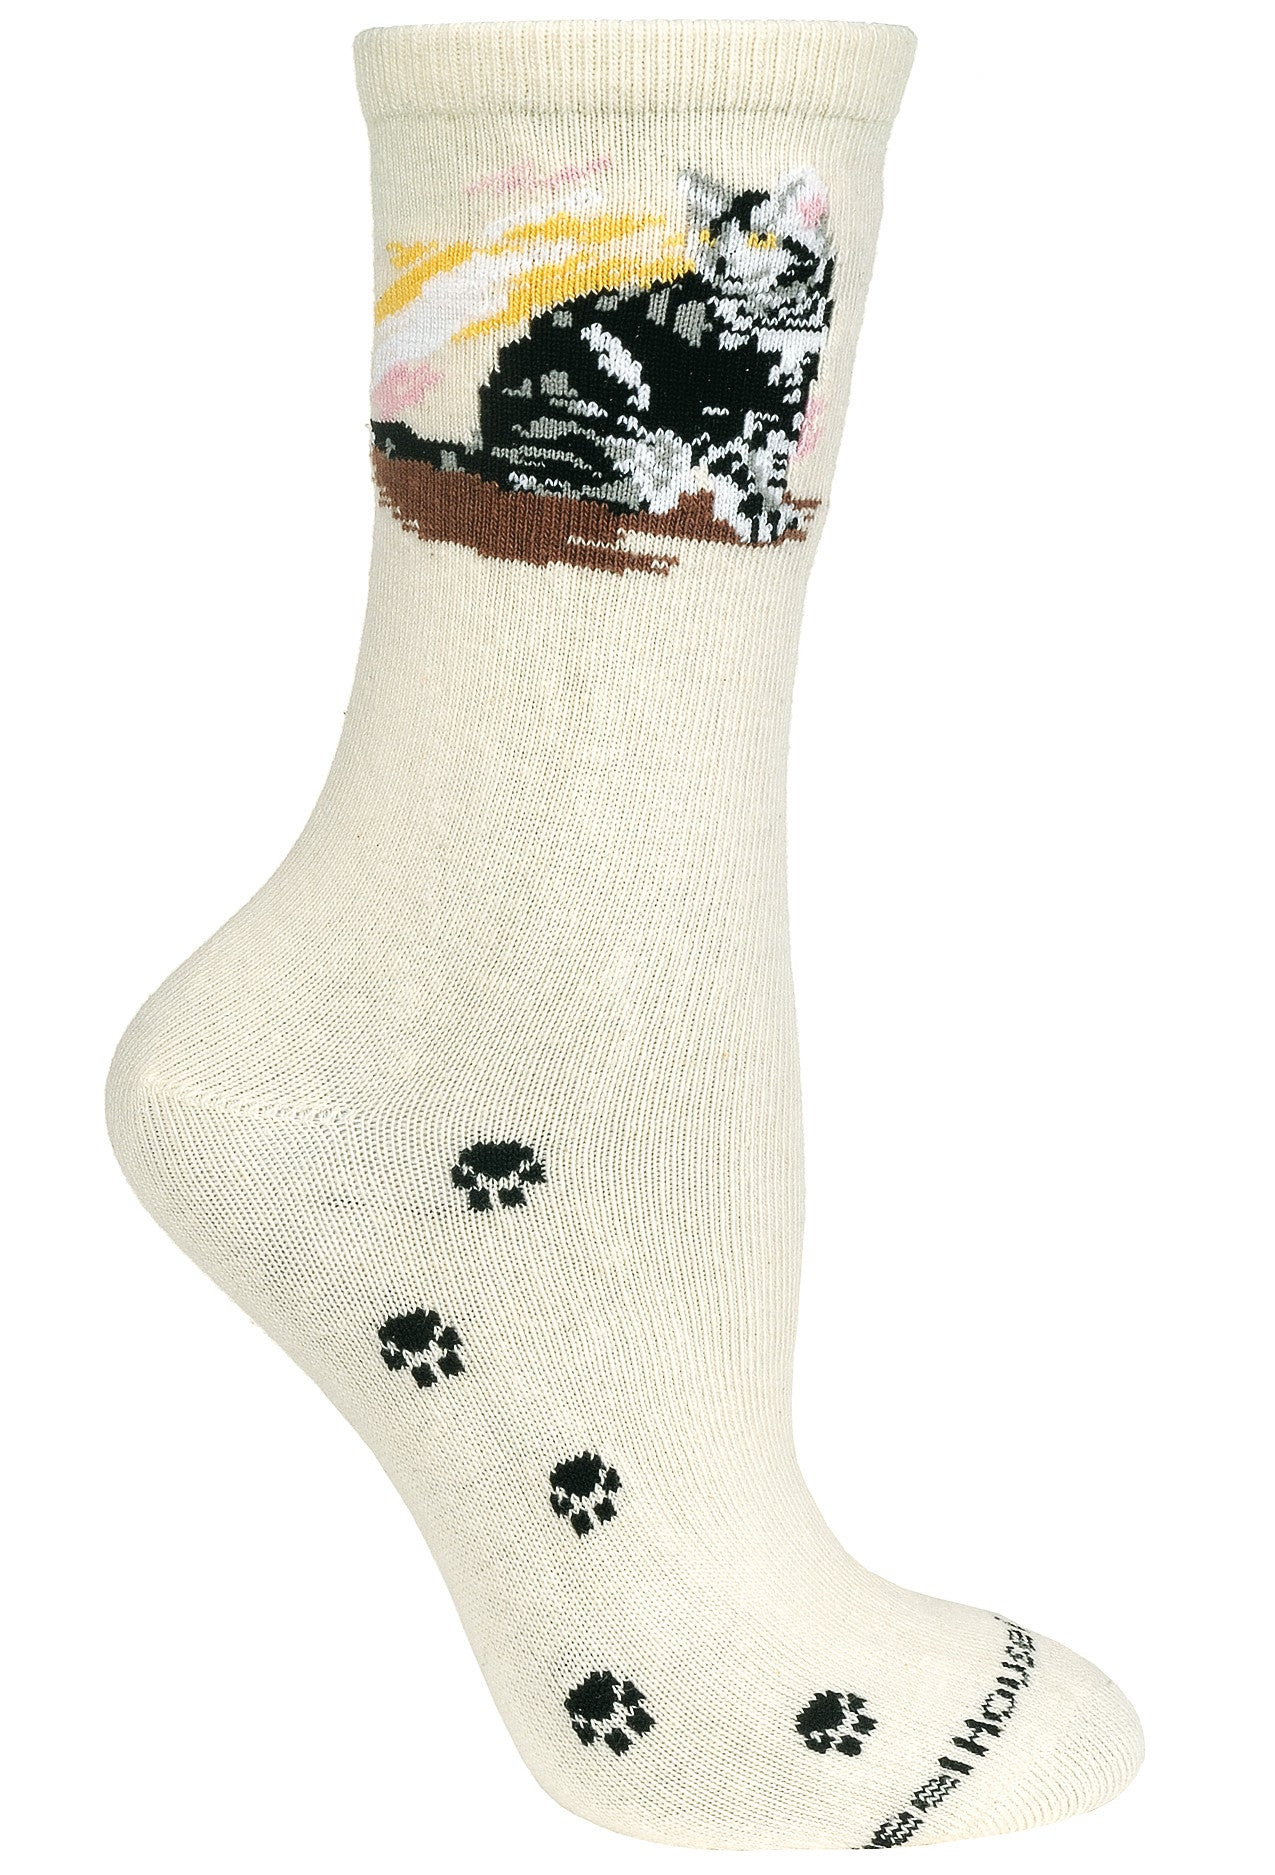 Silver Tabby Cat on Natural Crew Socks